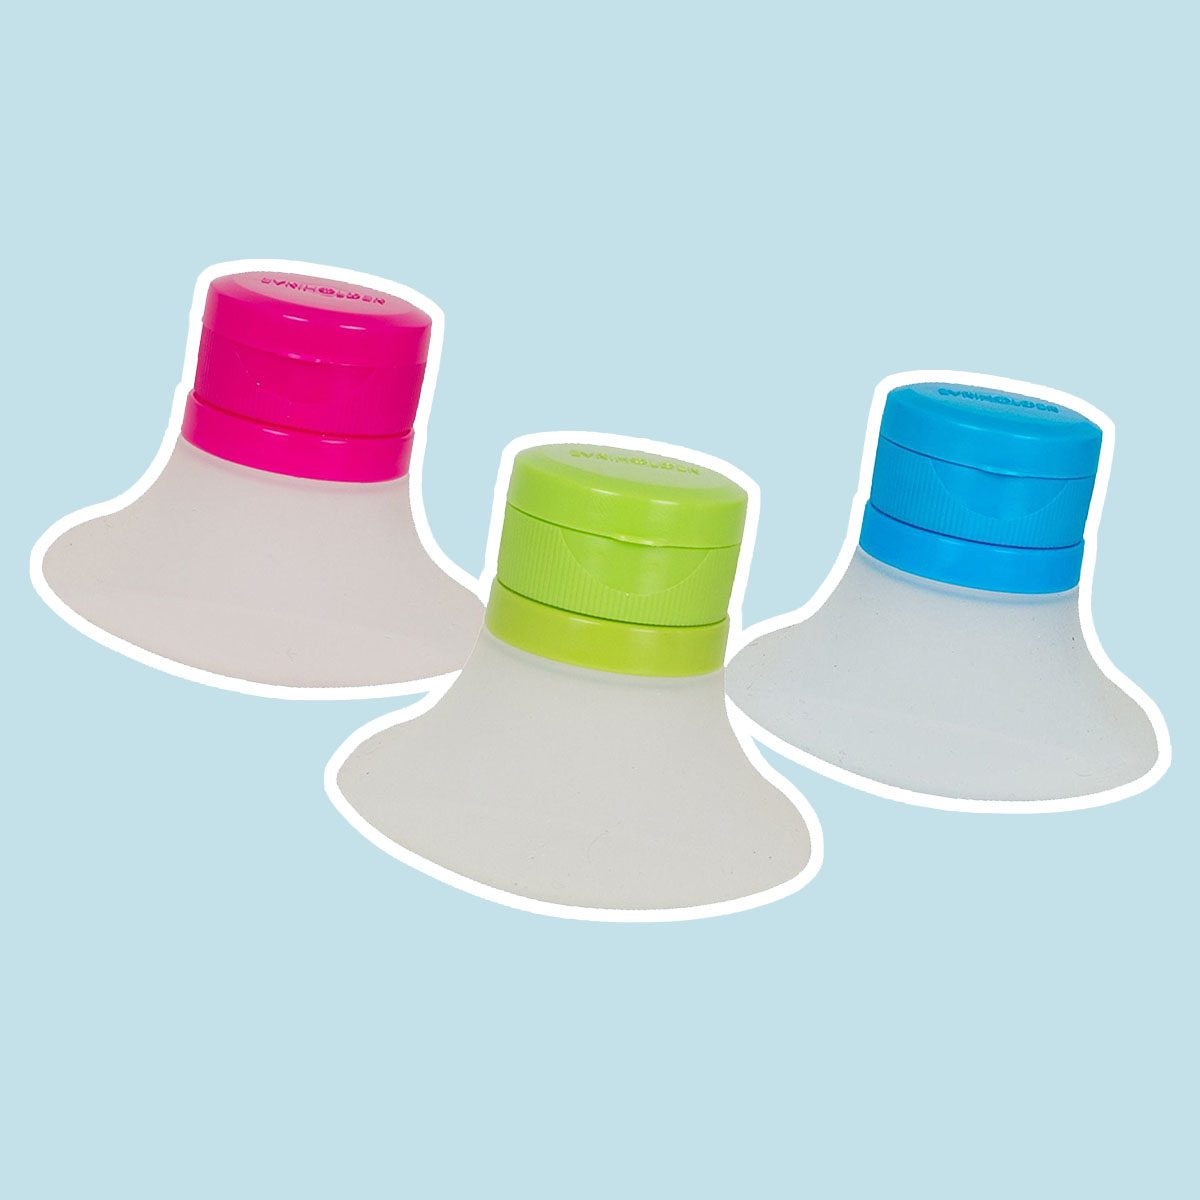 Evriholder Dressing to Go Salad Dressing Containers